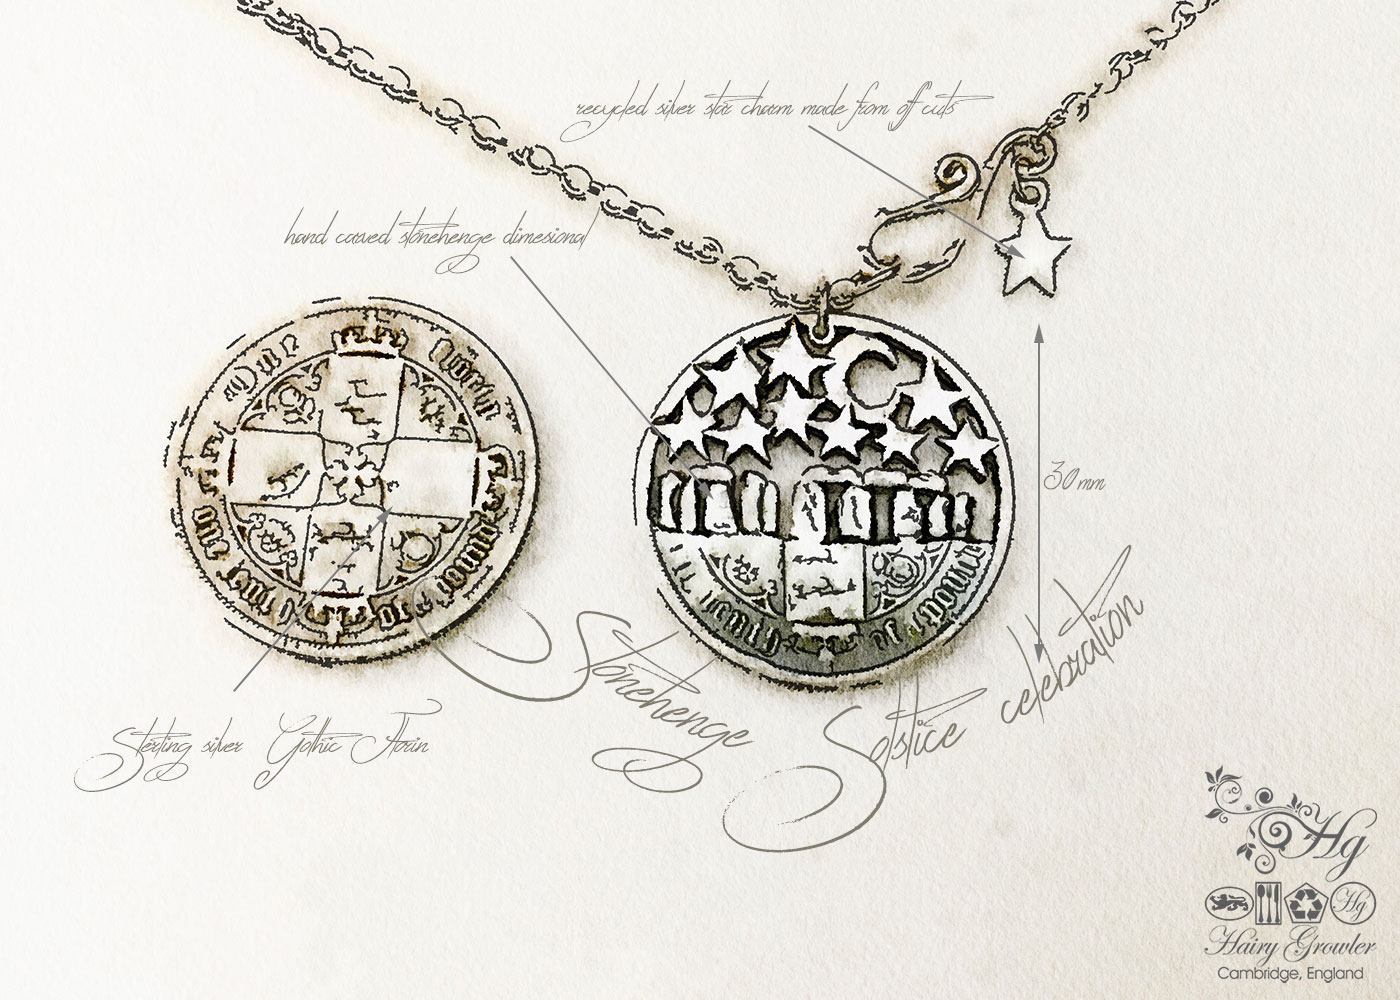 handcrafted and recycled summer solstice coin necklace pendant